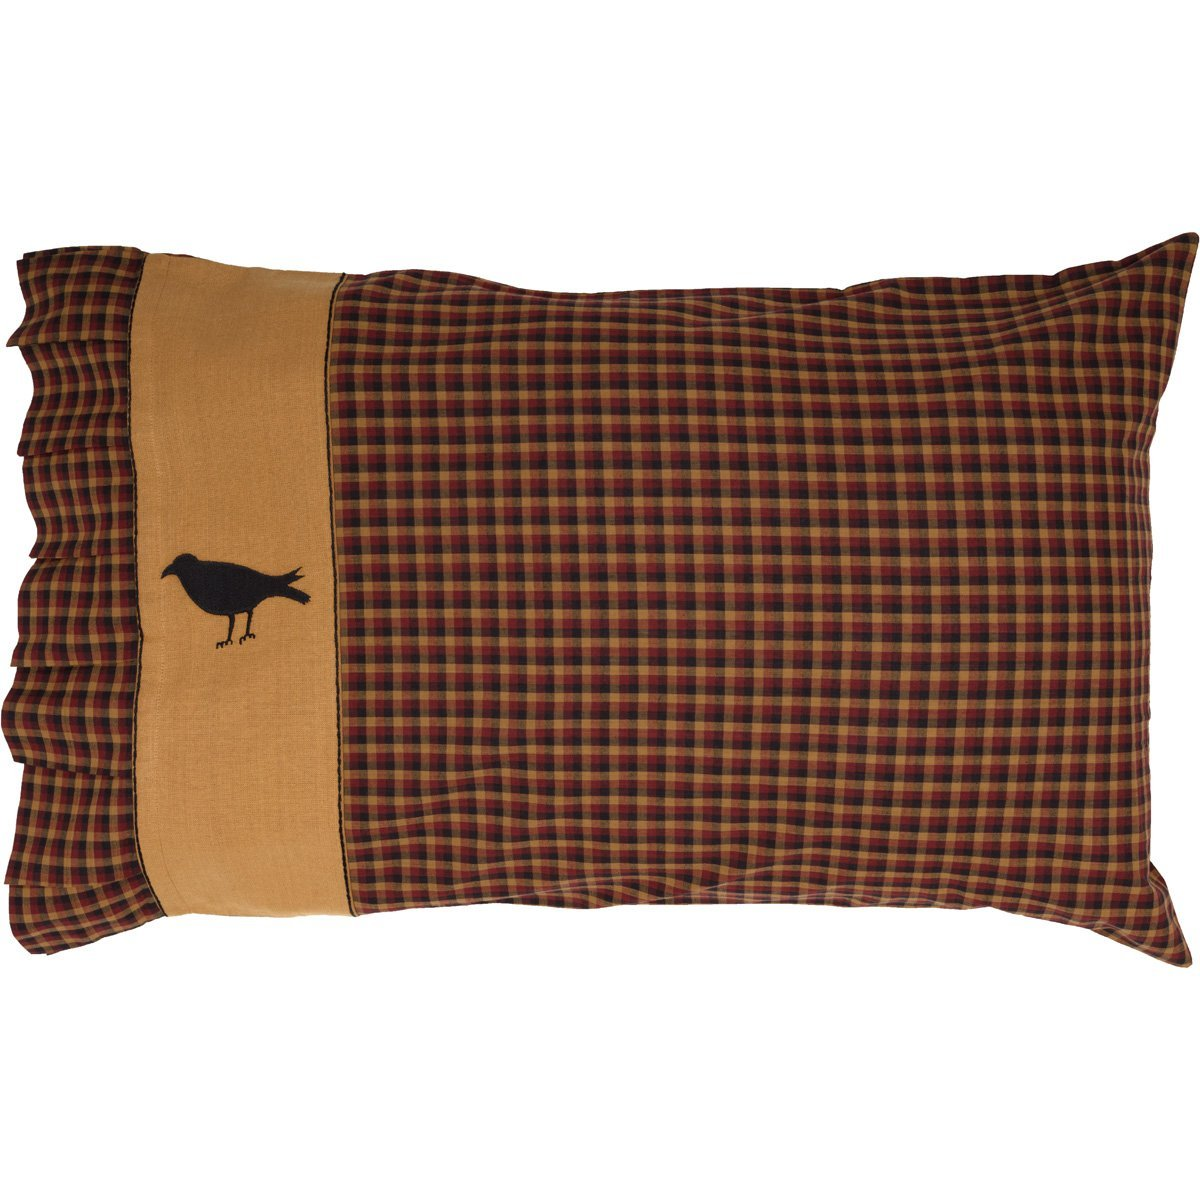 Heritage Farms Crow Pillow Case Set of 2.